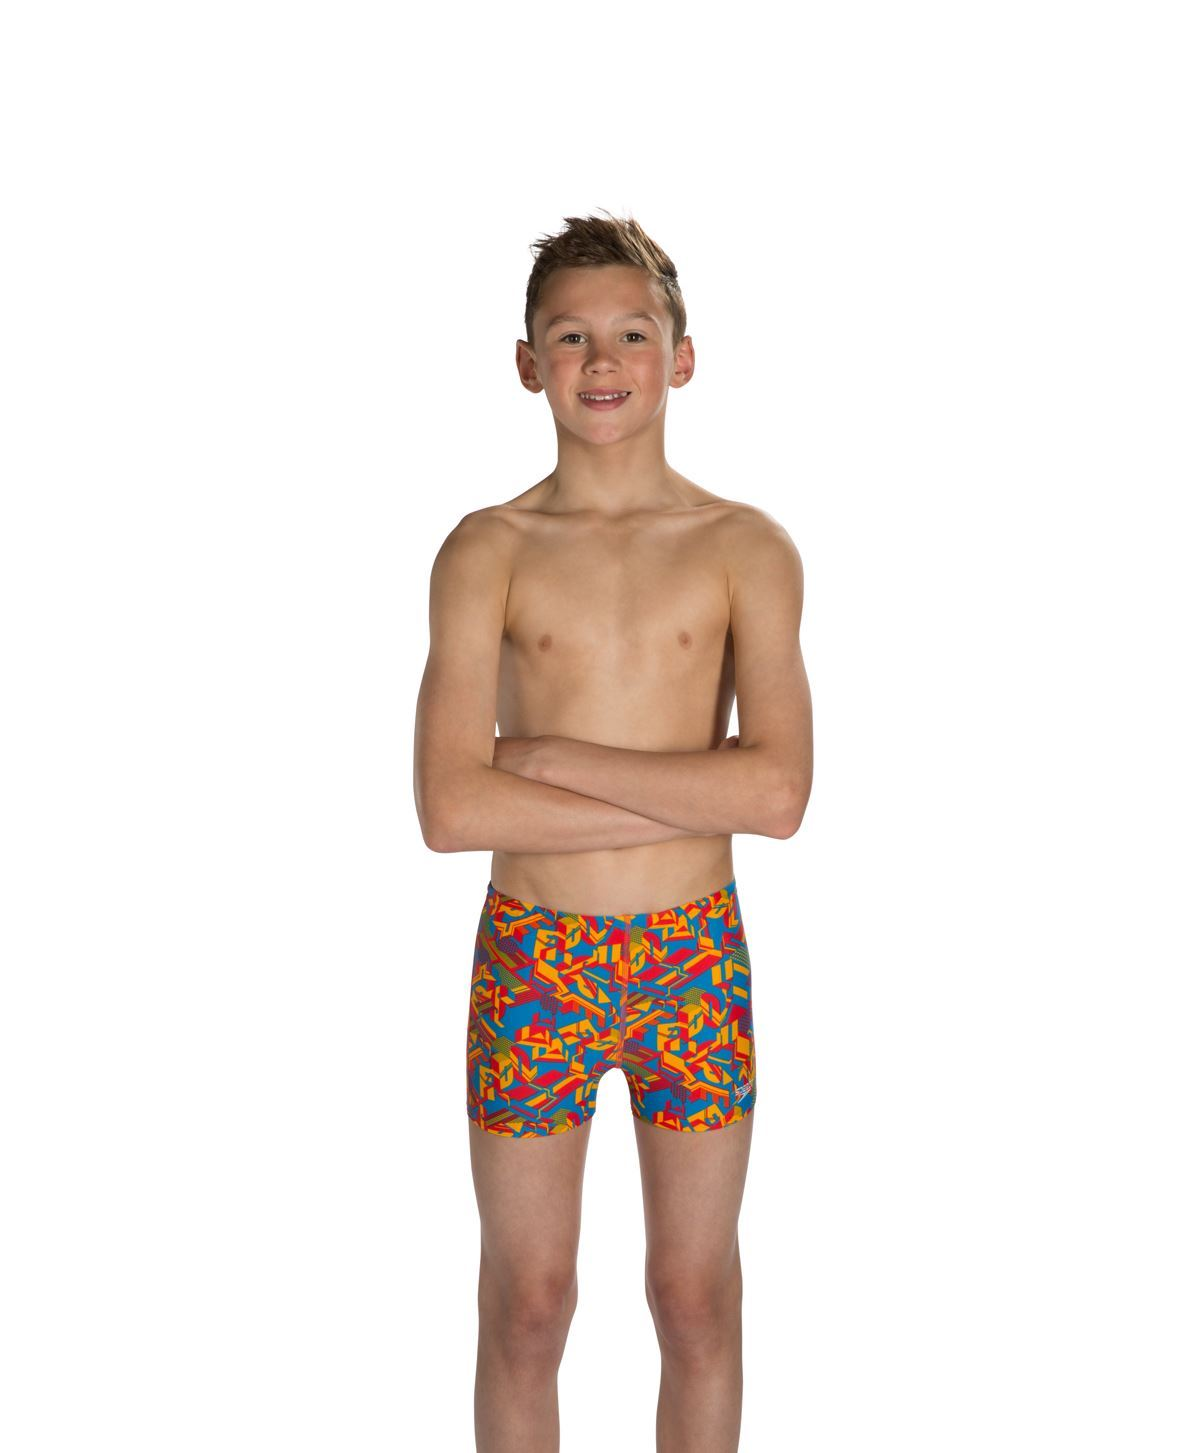 If you spend over $99, your order ships FREE with Day Delivery/7 Customer Support· Low Price Guarantee· Easy Returns· Free Shipping Orders $49+Brands: Speedo, TYR, Dolfin, Arena, O'Neill, Billabong, Angry Birds, Under Armour.